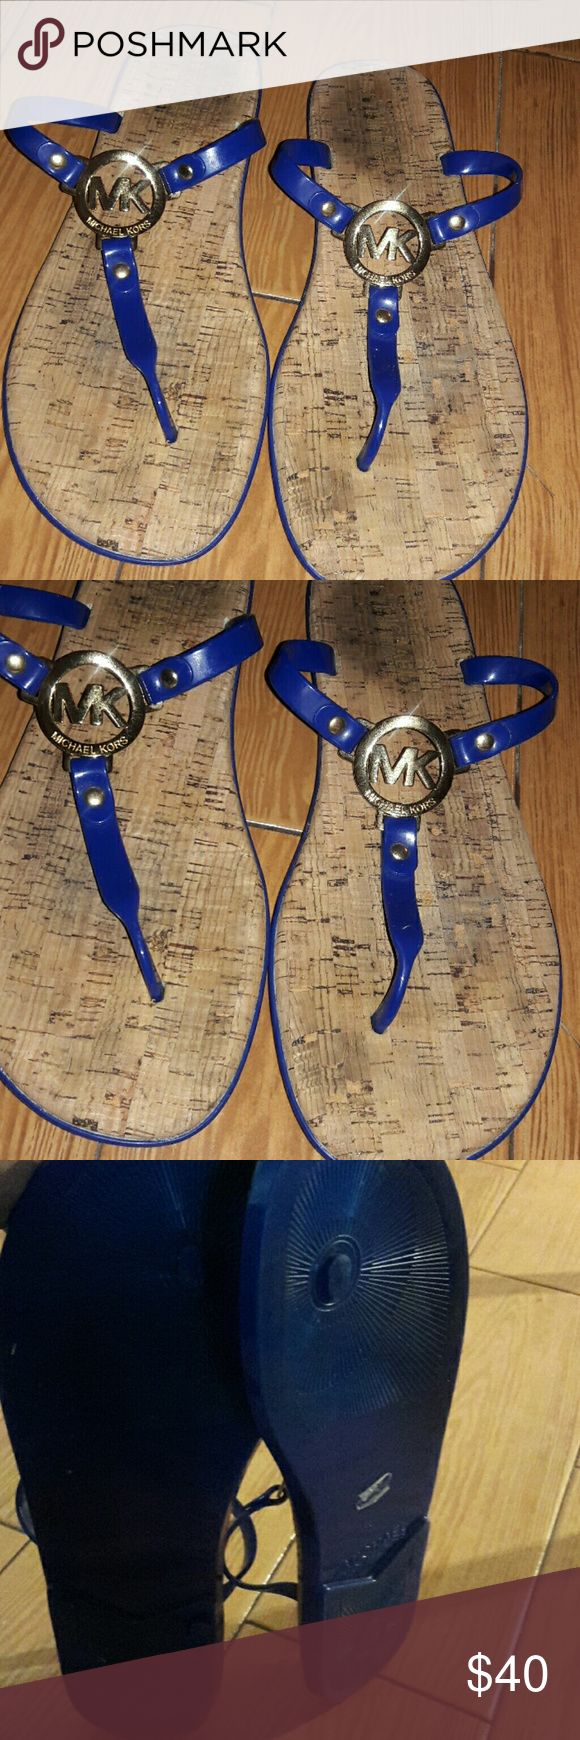 Michael kors charm jelly cork thong sandals 11m Still good condition just cute blue color size 11 Shoes Sandals